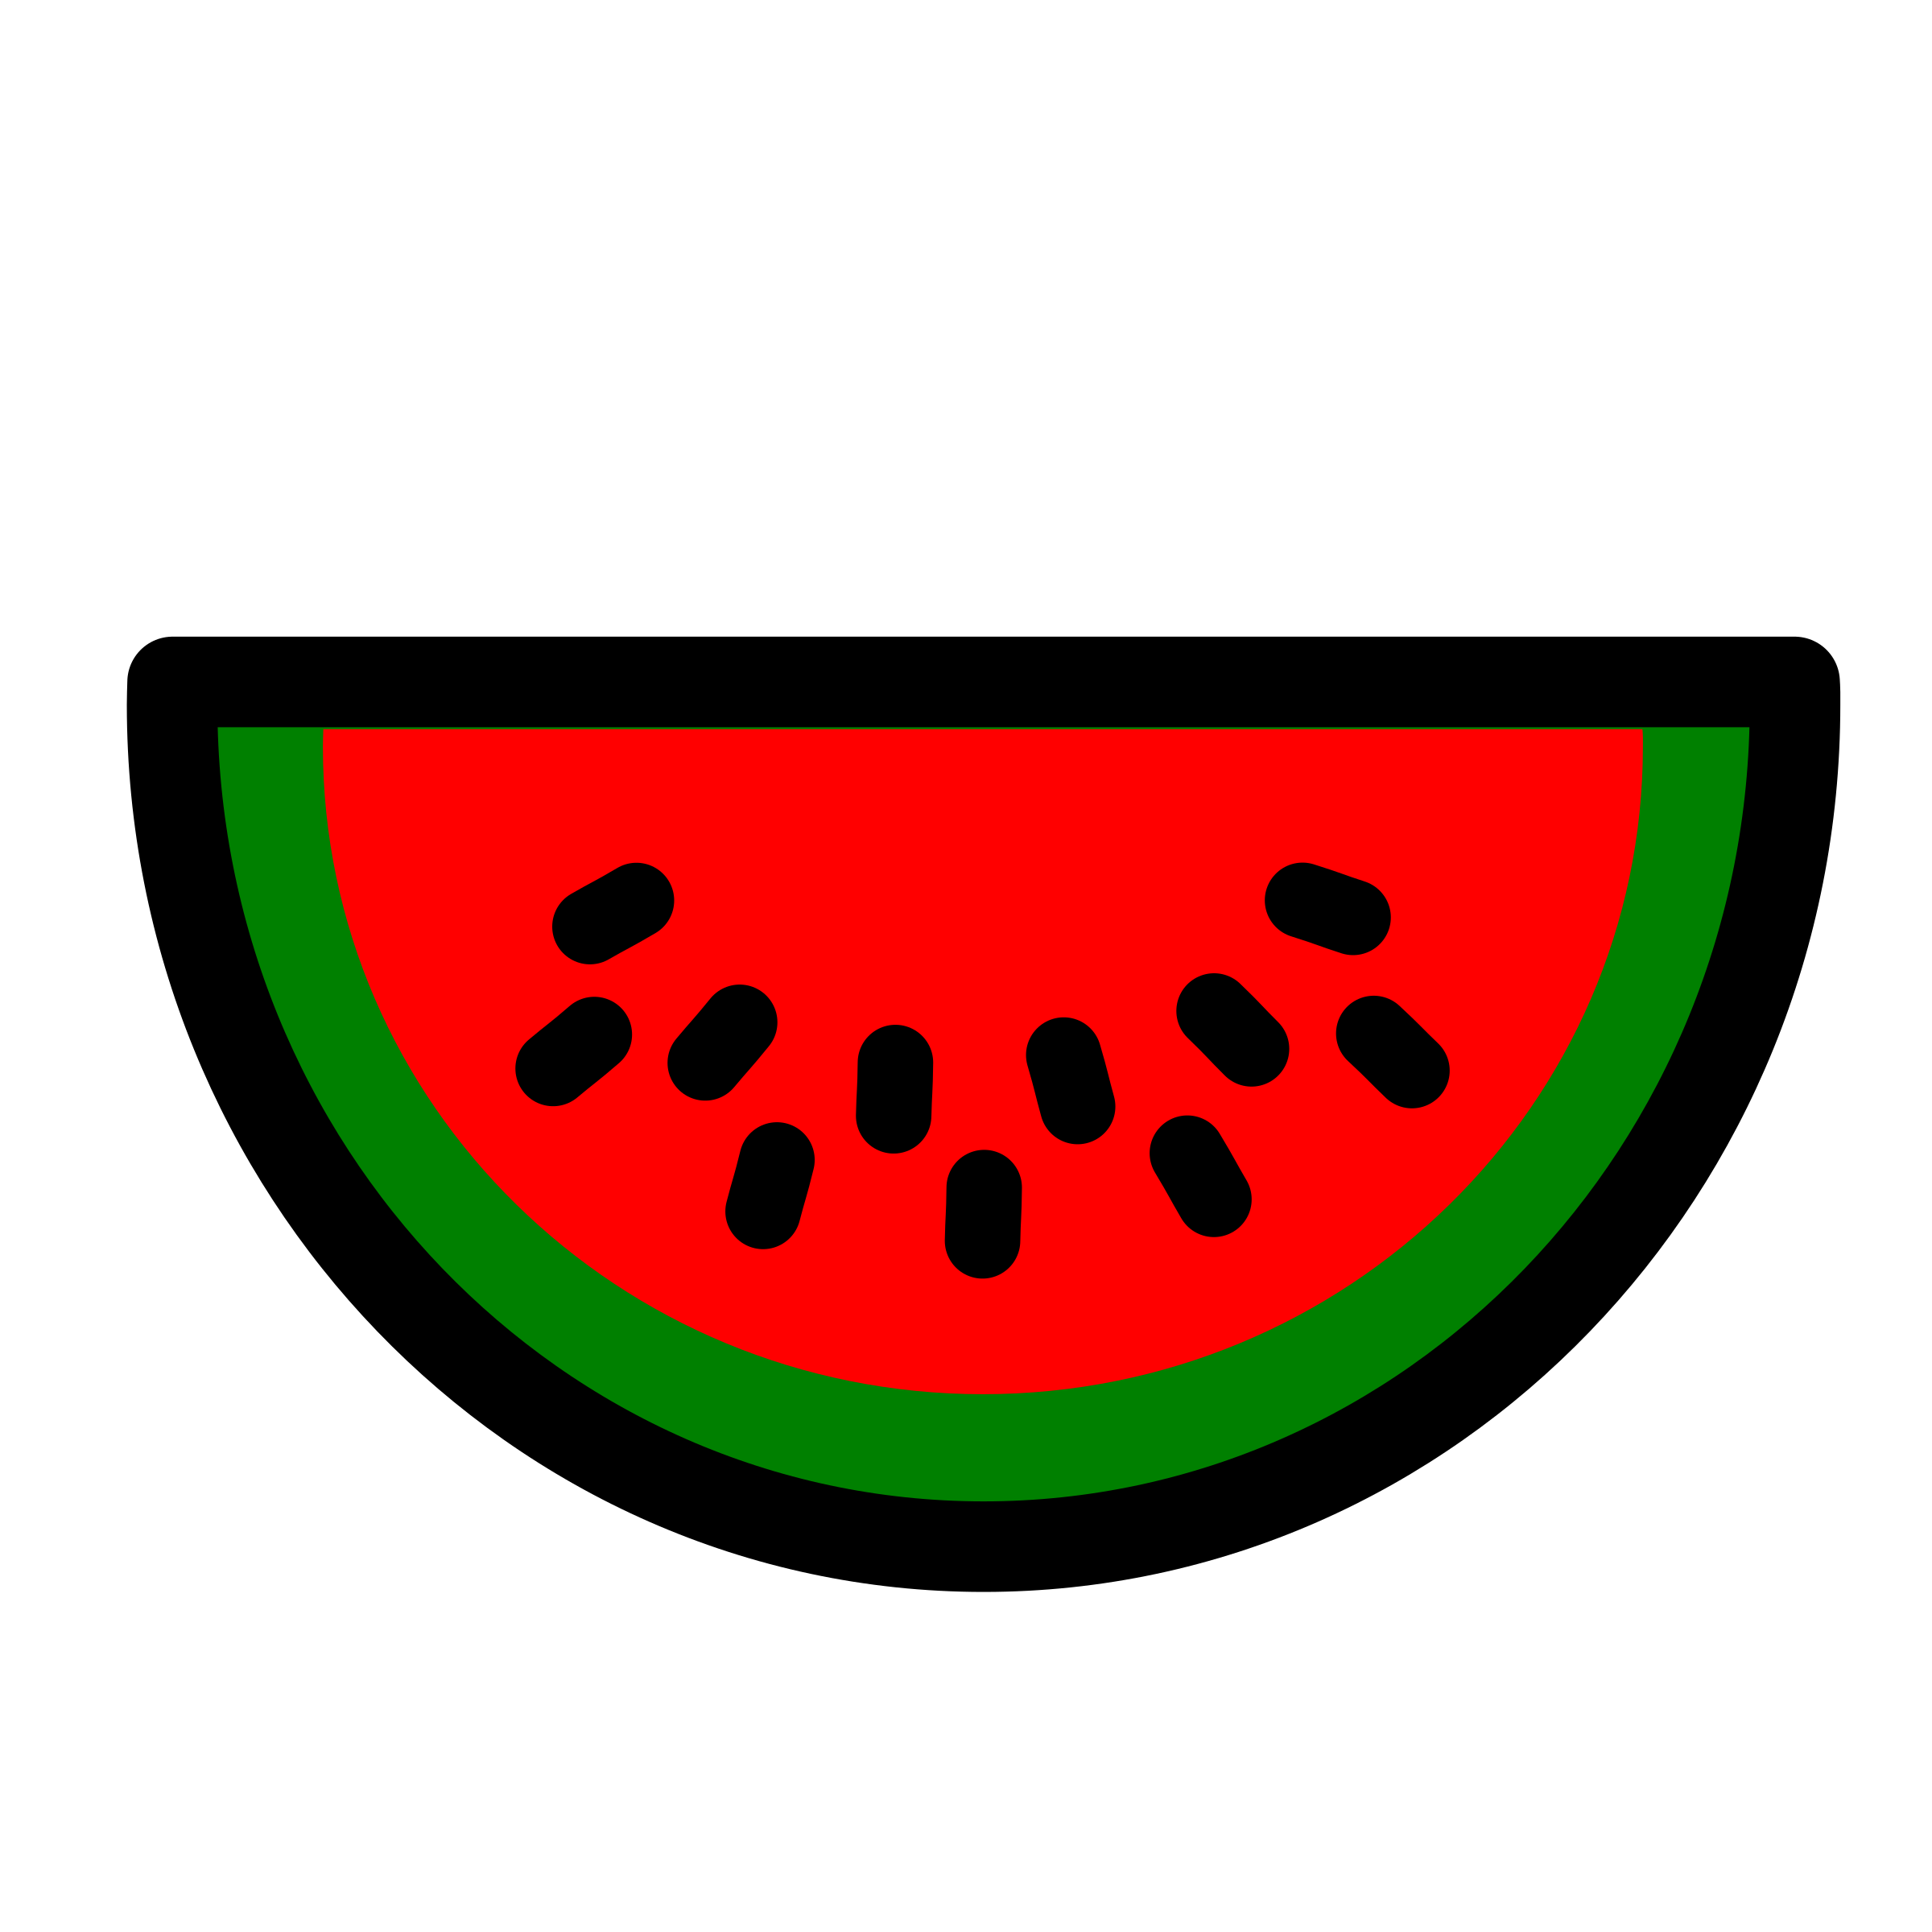 Watermelon icon 1 by pitr